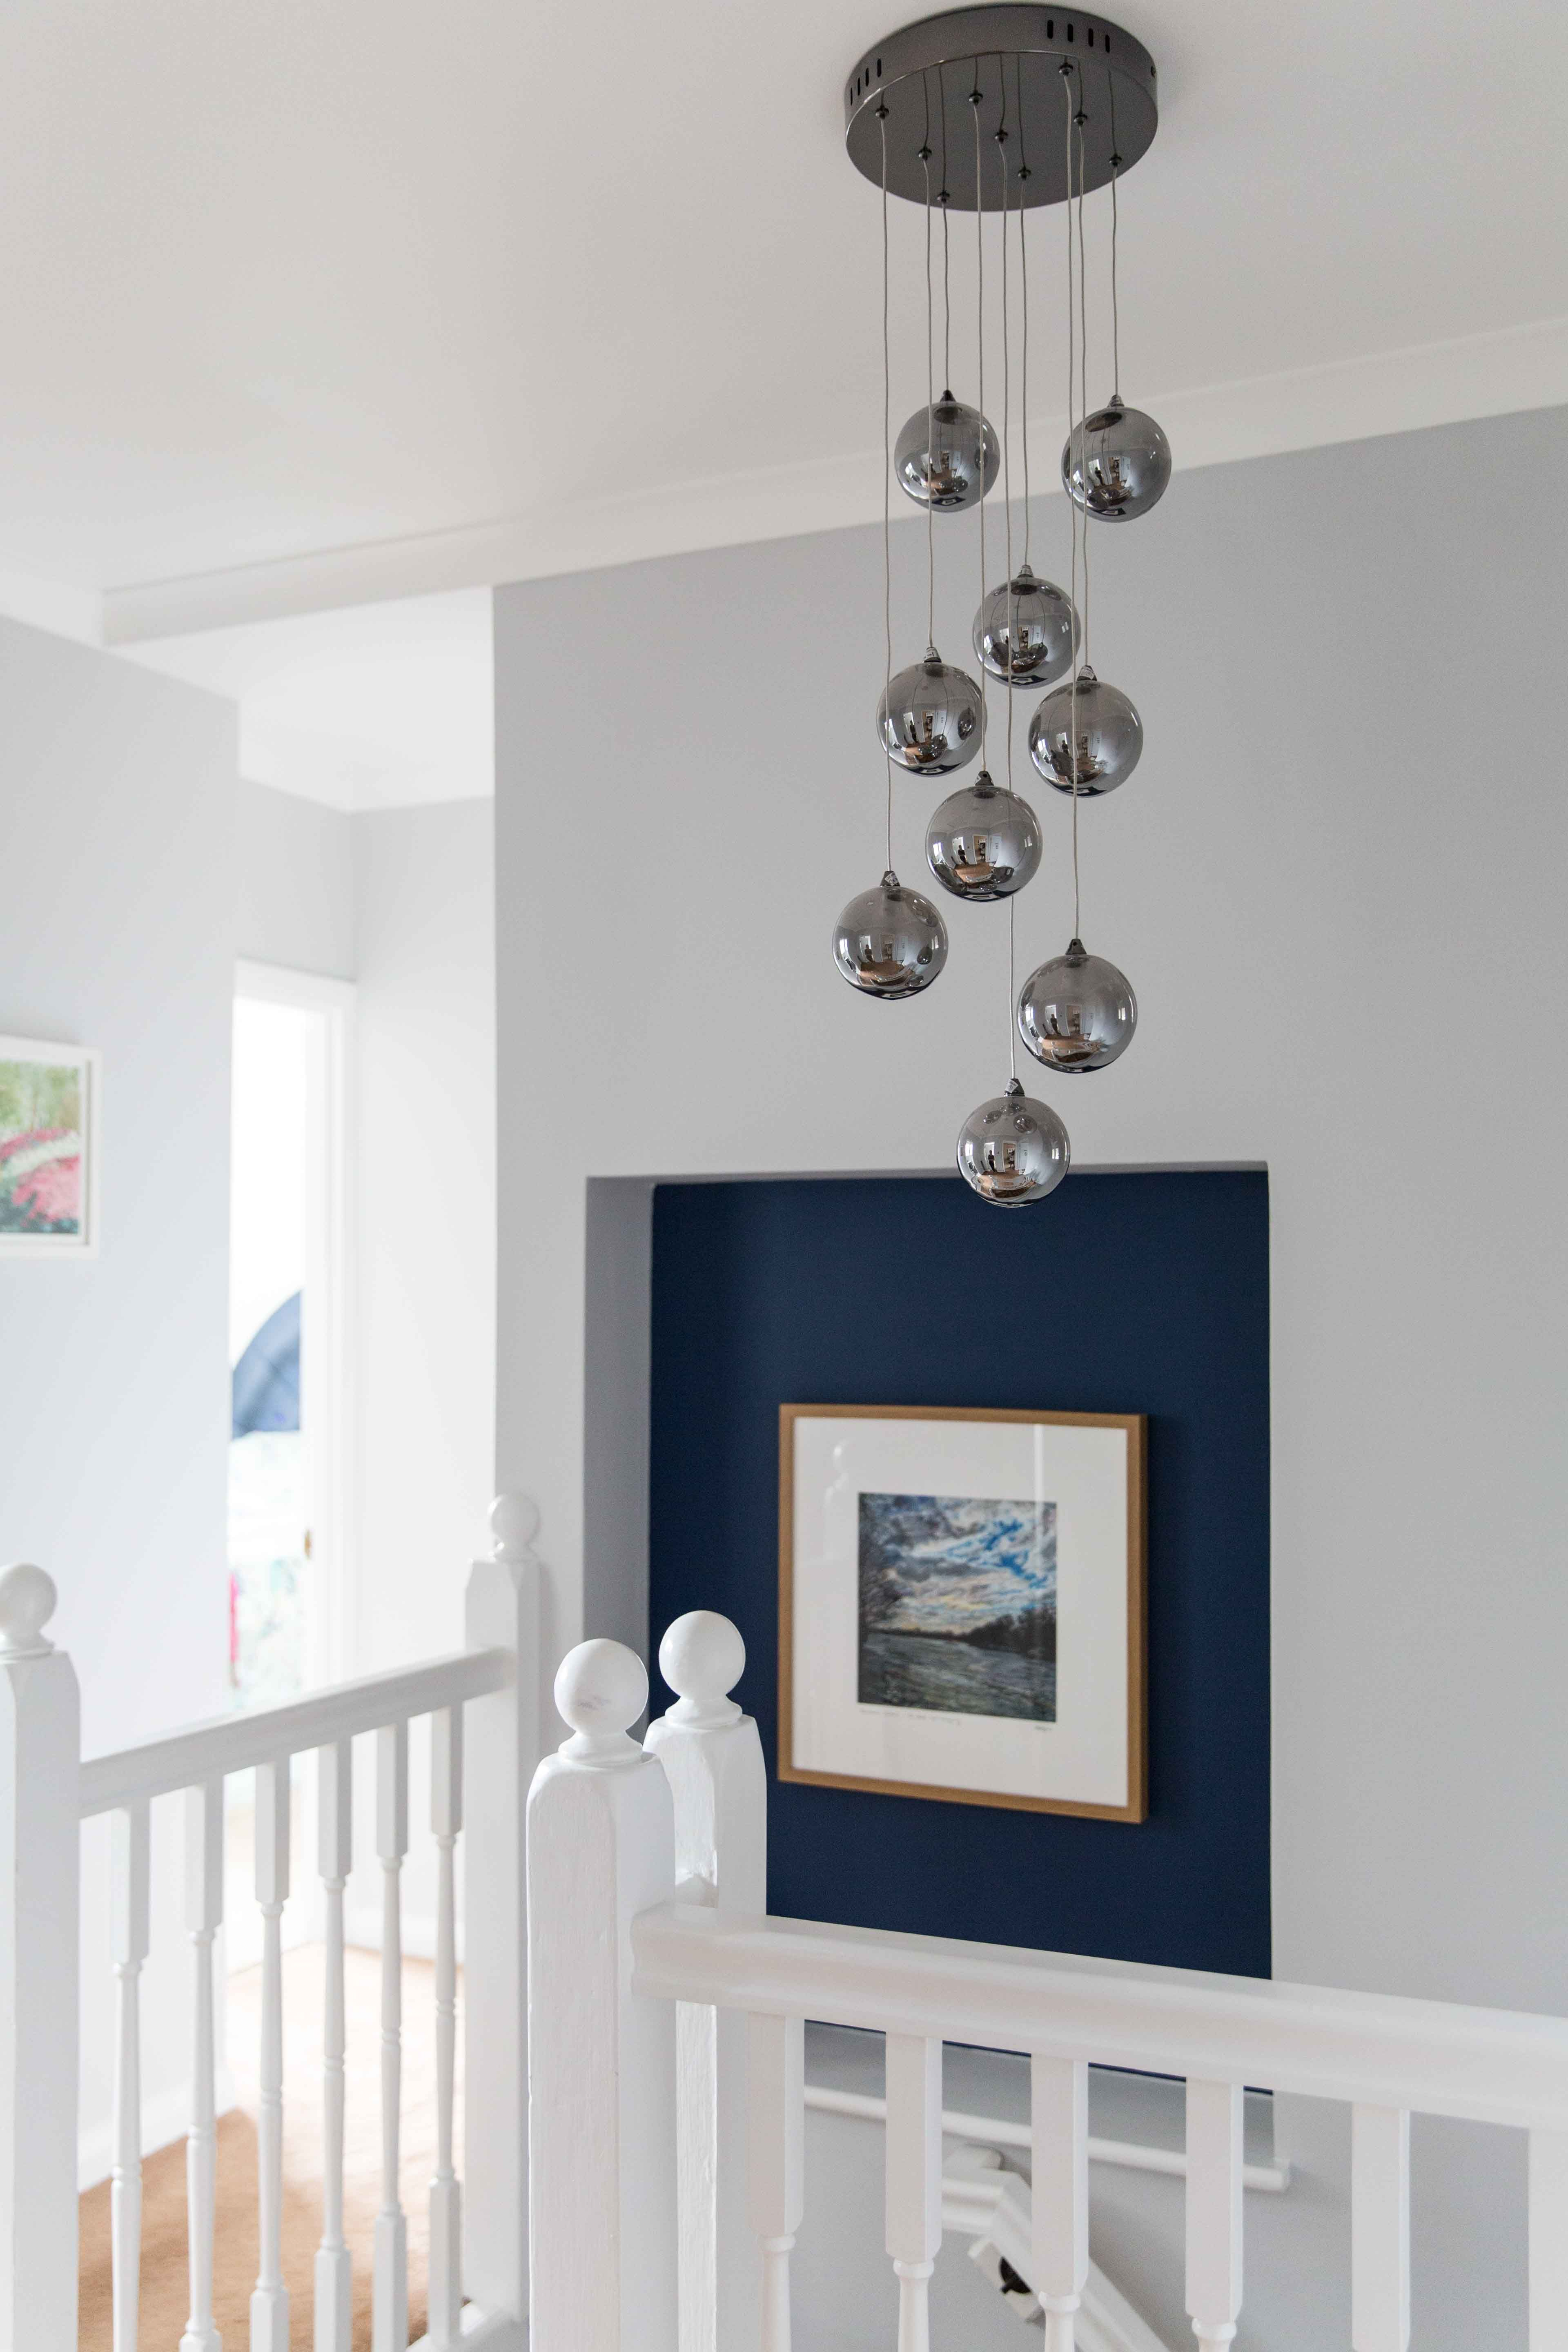 Statement lighting in a narrow hallway creates a focal